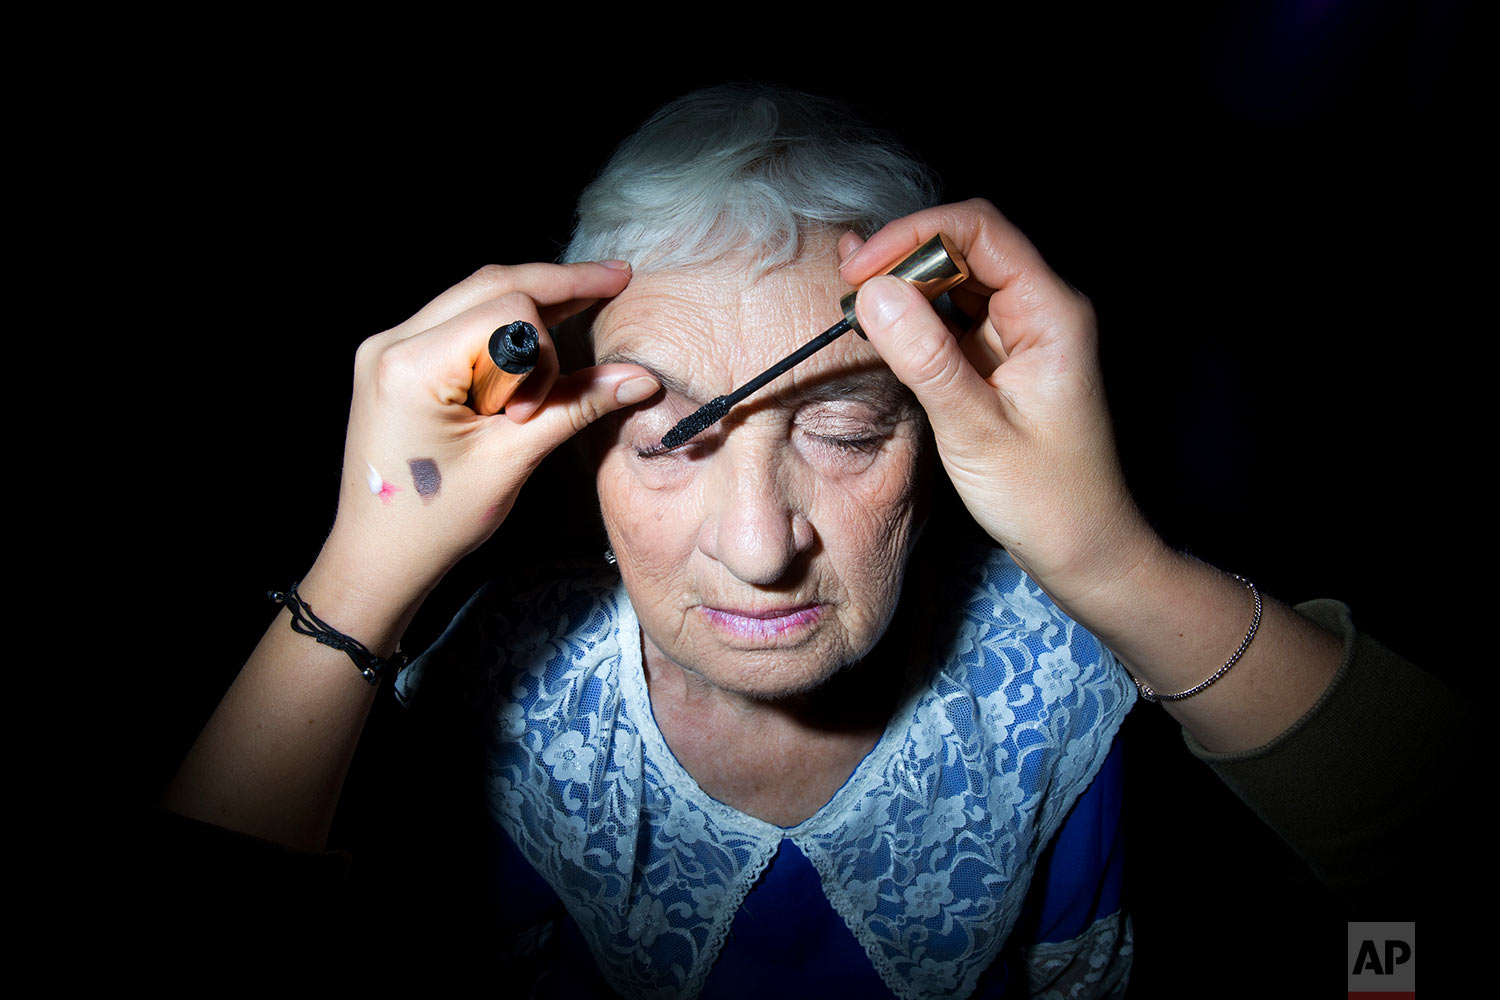 Holocaust survivor Elizabeth Rudich, 86, gets her makeup ready during a Beauty Heroines event in Ramat Gan, Israel, Monday, April 9, 2018.  (AP Photo/Oded Balilty)